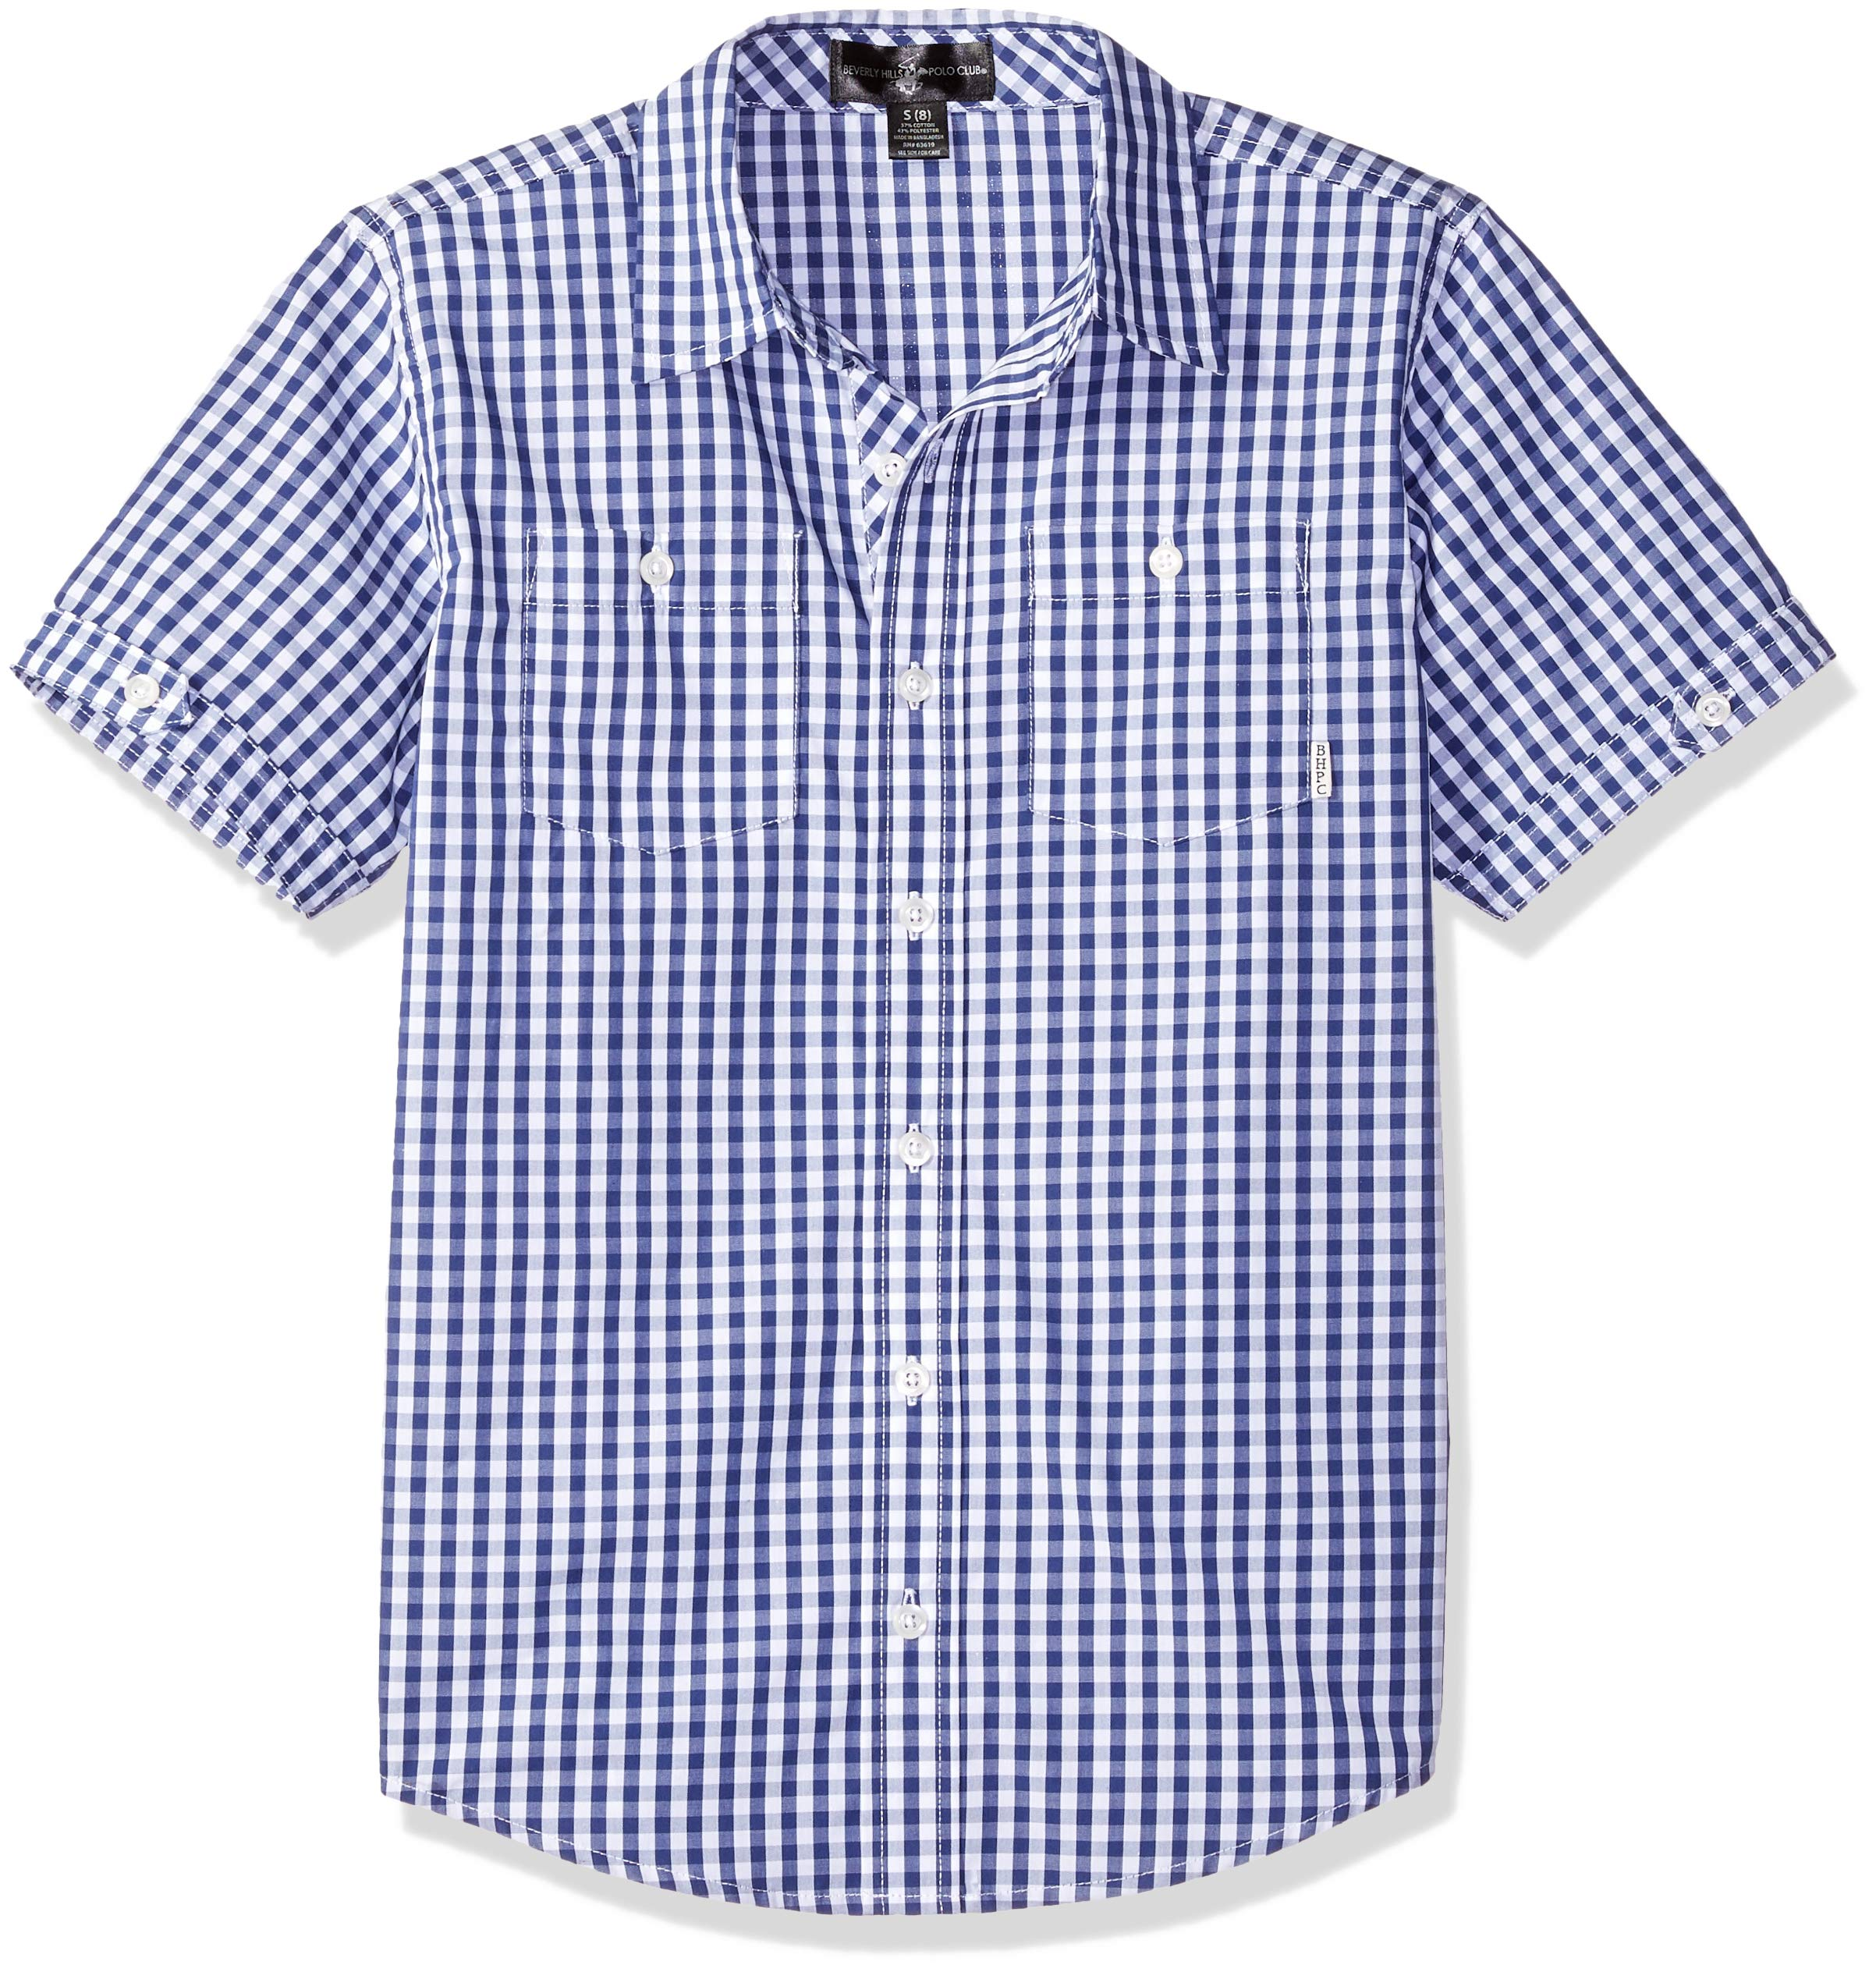 Beverly Hills Polo Club Big Boys' Short Sleeve Shirt, Navy/White Gingham, 18/20